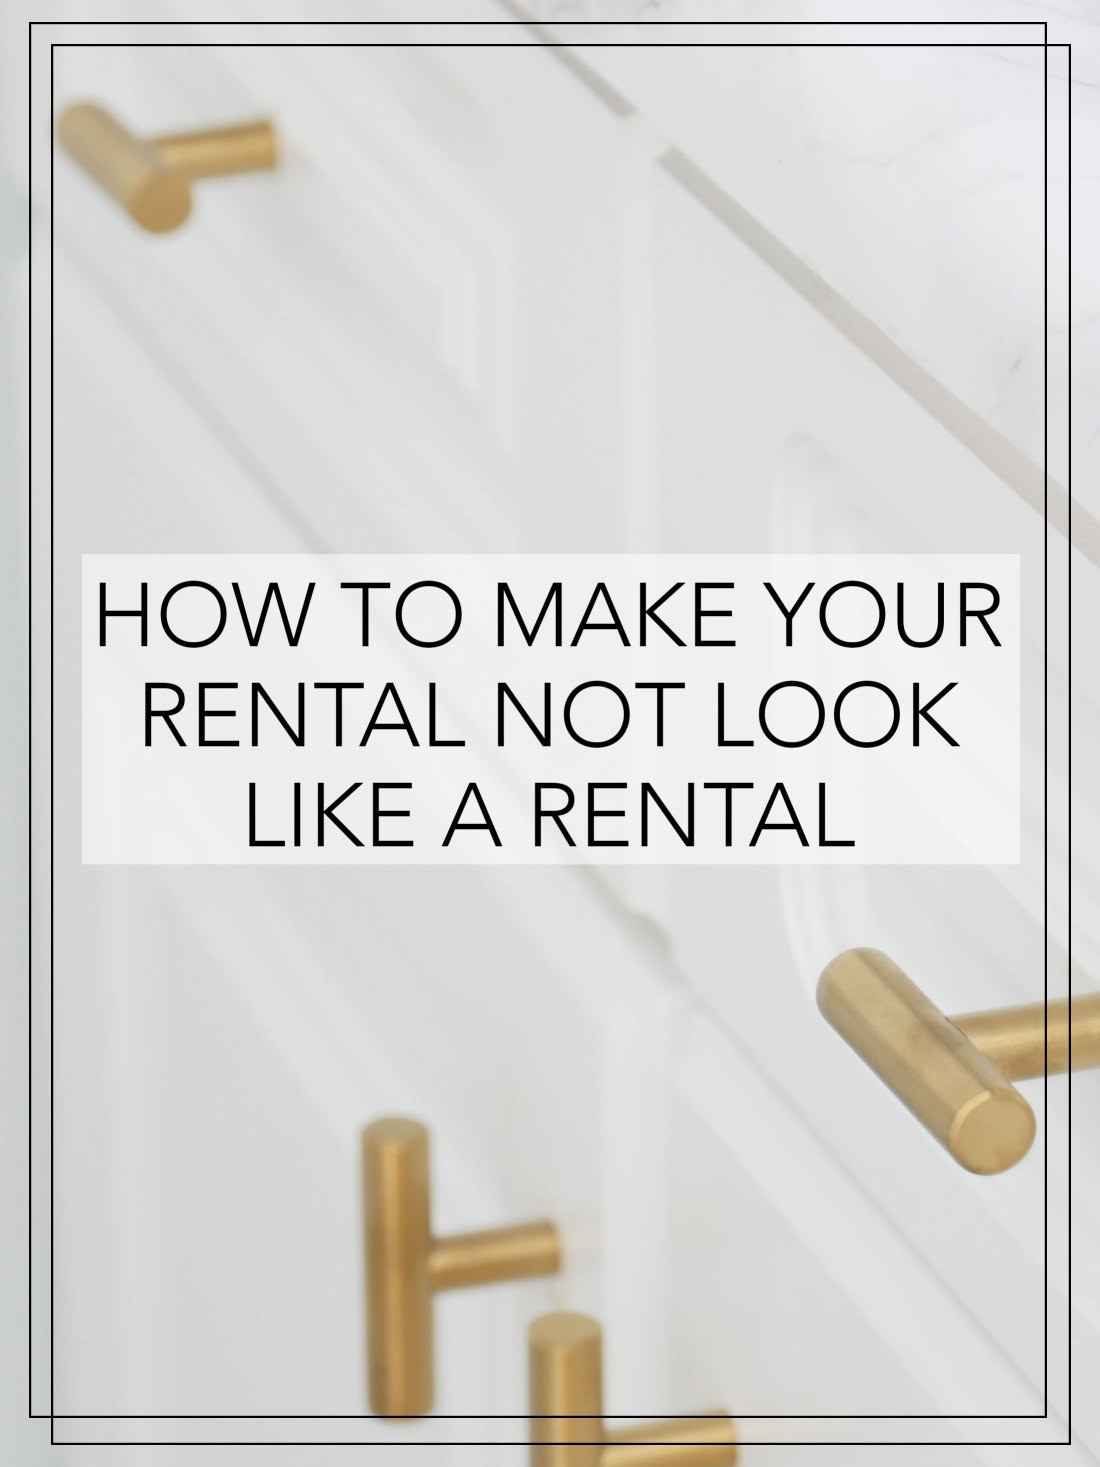 Just moved into a rental apartment? Here are some tricks to make it look like a permanent residence! #rentalhomedecorating  #rentaldecorating #rentalapartmentdecorating #smalllivingroomideas  #smallapartmentdecorating #smallapartmentideas #walldecor #rentalhomedecoratingdiy #livingroomdecor #livingroomideas